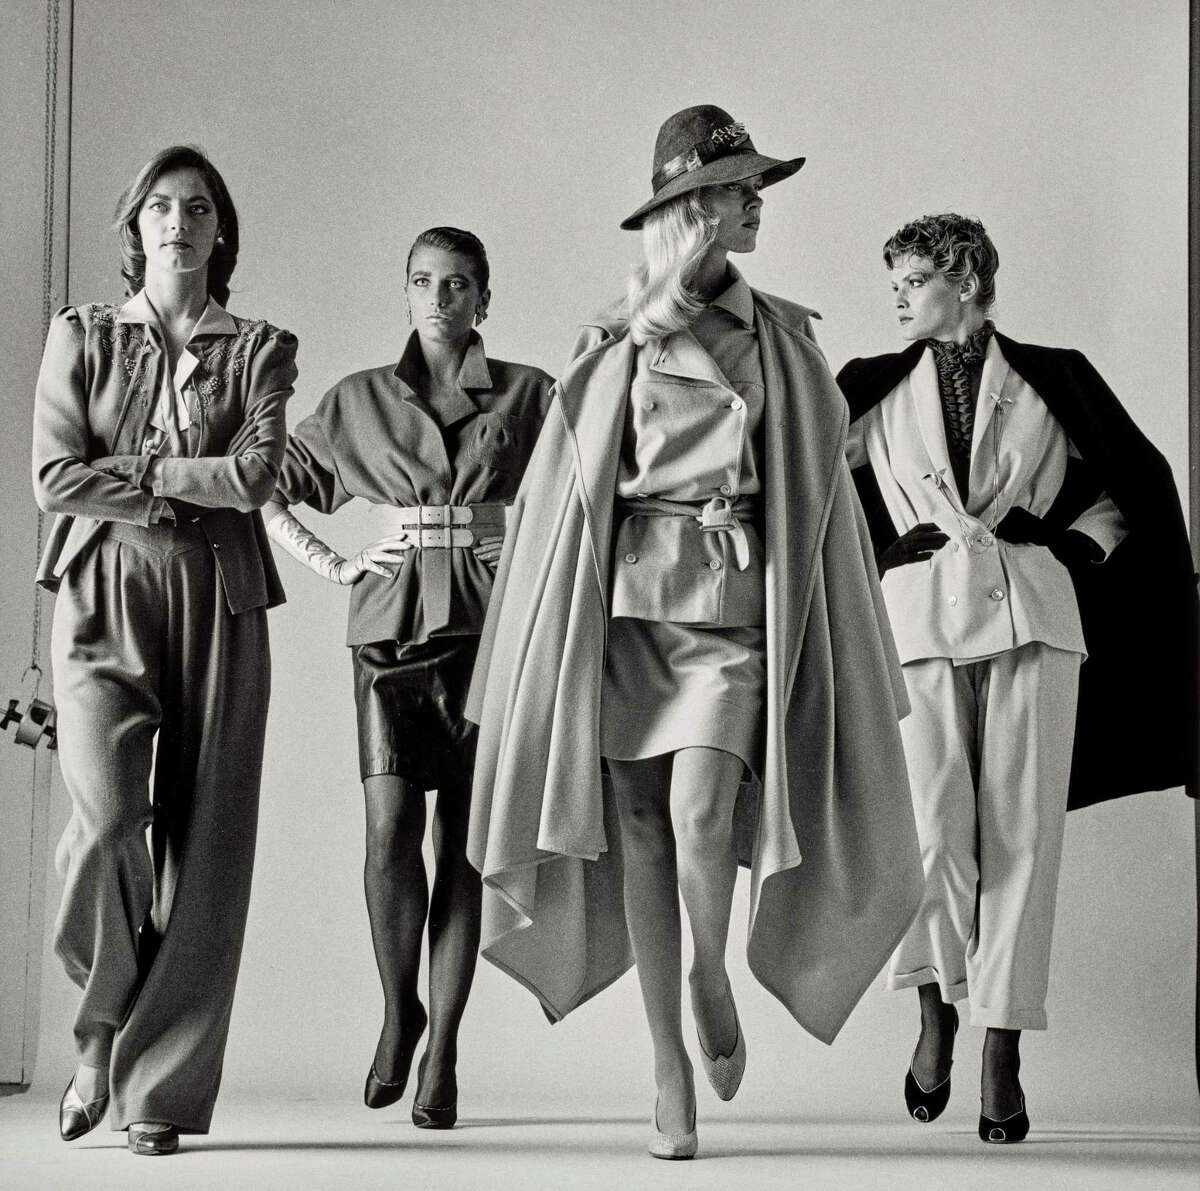 """From """"Icons of Style: A Century of Fashion Photography,"""" June 23-Sept. 22 at Museum of Fine Arts, Houston: Helmut Newton's """"Sie Kommen-Dressed,"""" 1981."""